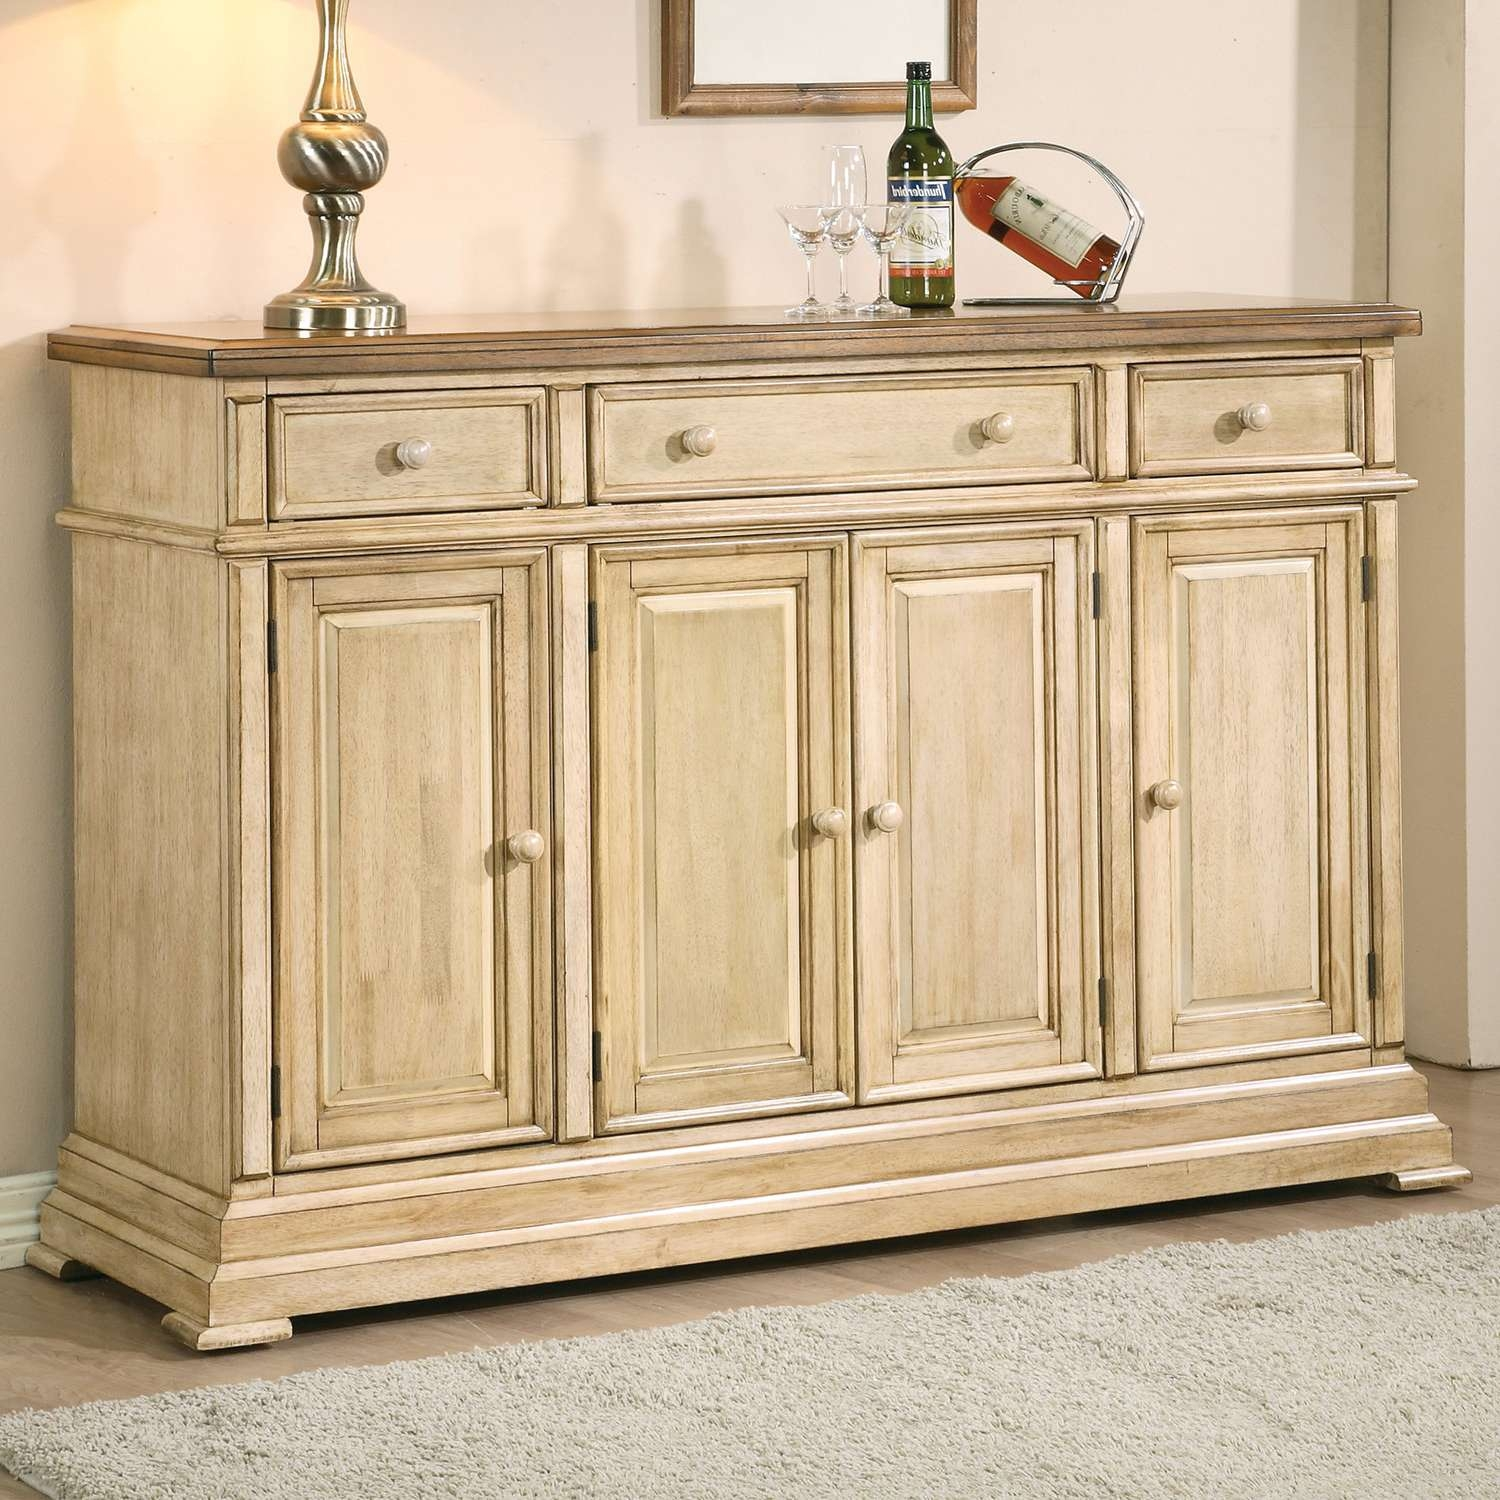 Best Of White Buffet Sideboard – Bjdgjy With Buffet Sideboards (View 4 of 20)